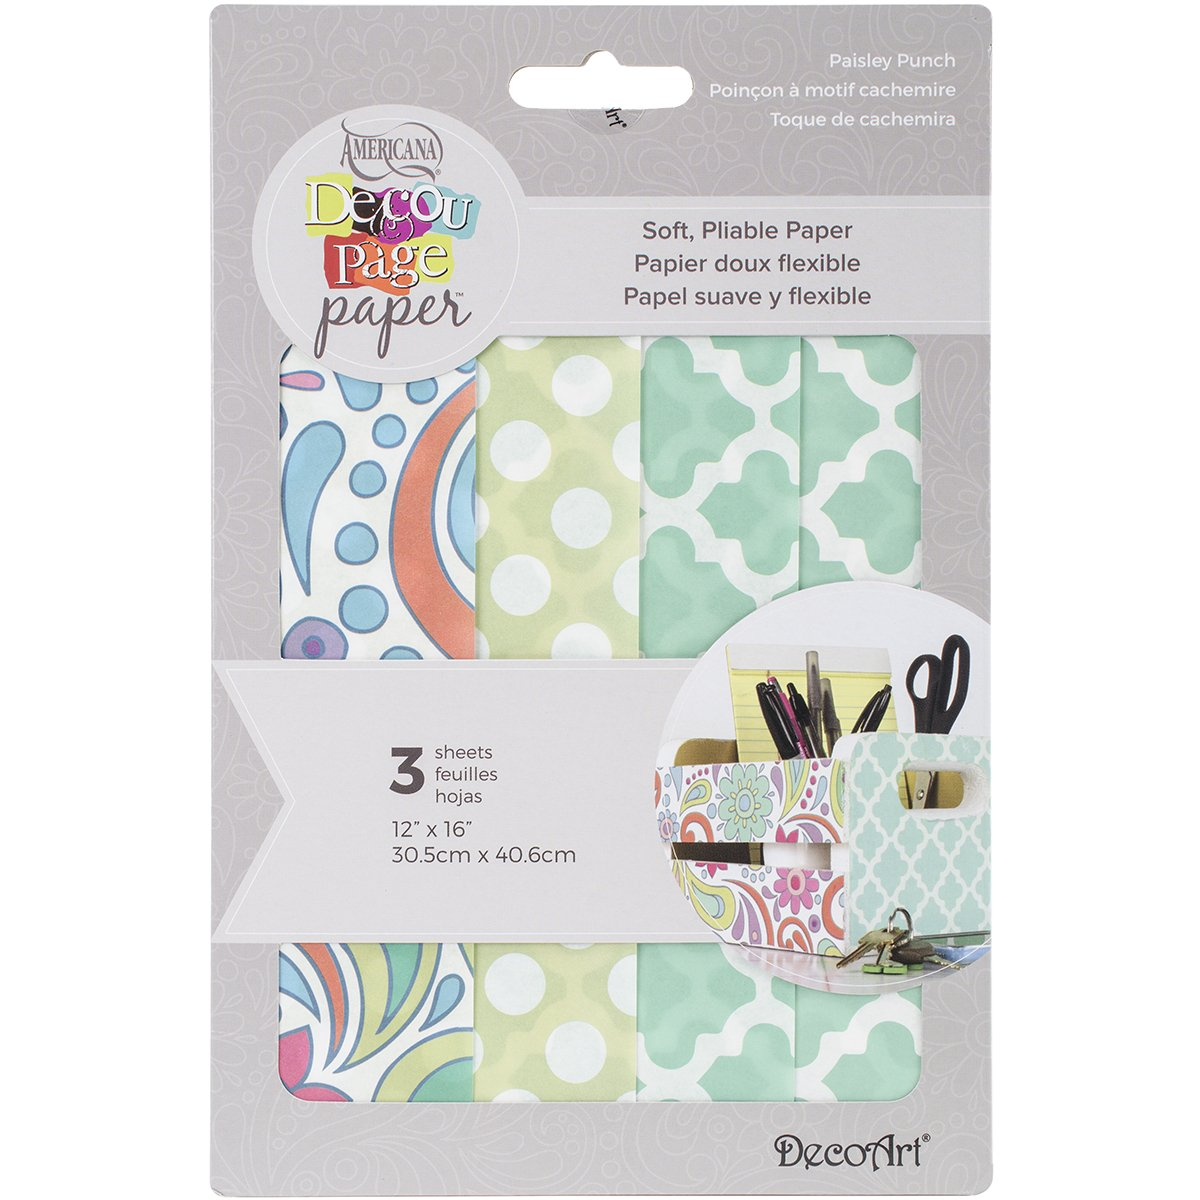 Deco Art Decoupage Paper 12-inch x 16-inch -Paisley Punch DPK-08